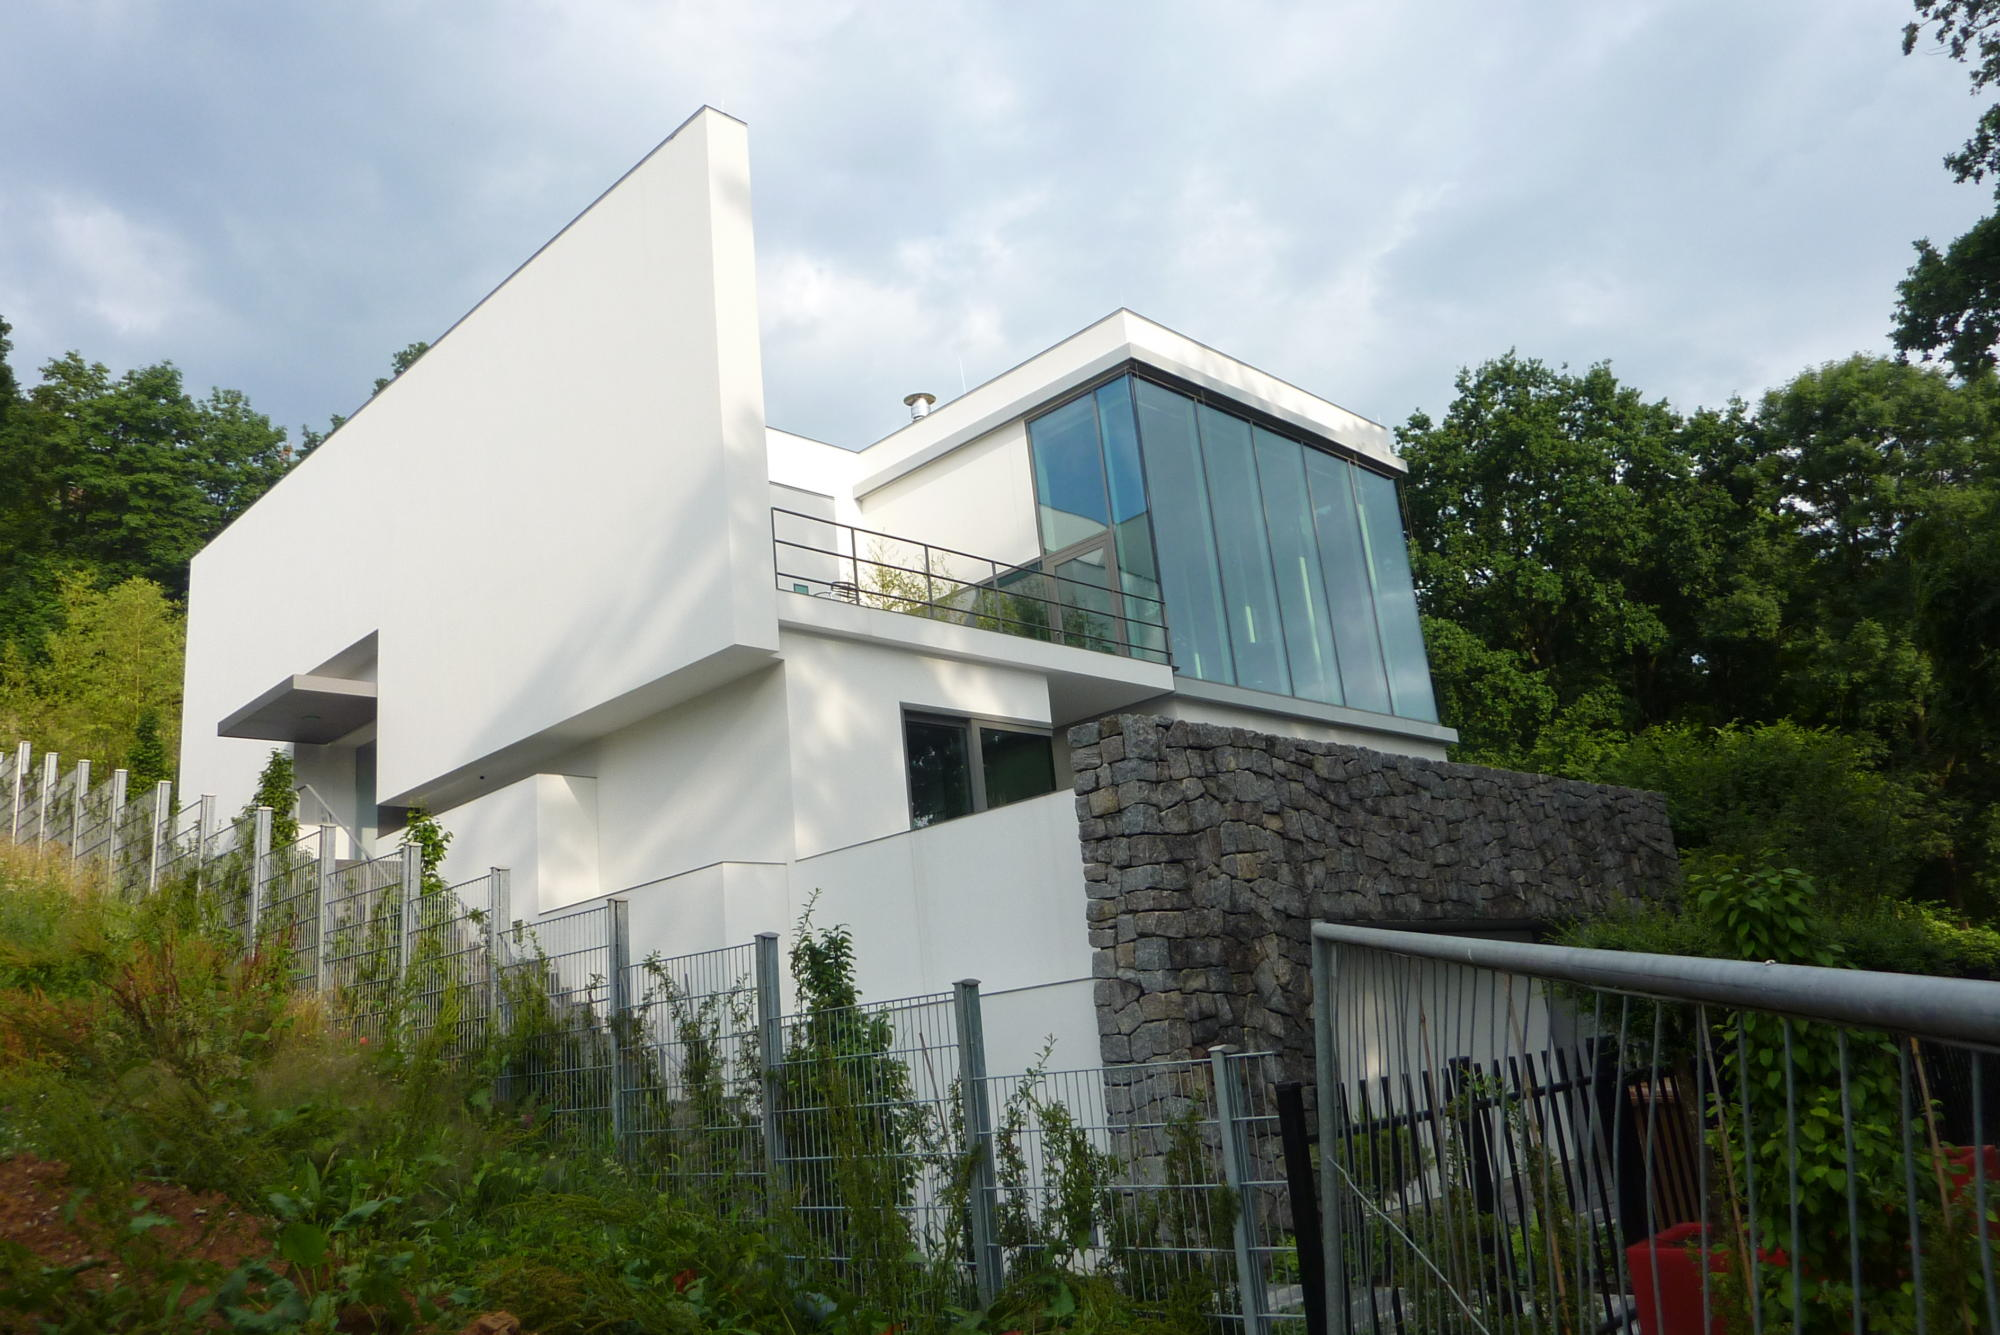 House in Frieburg | WORKS |